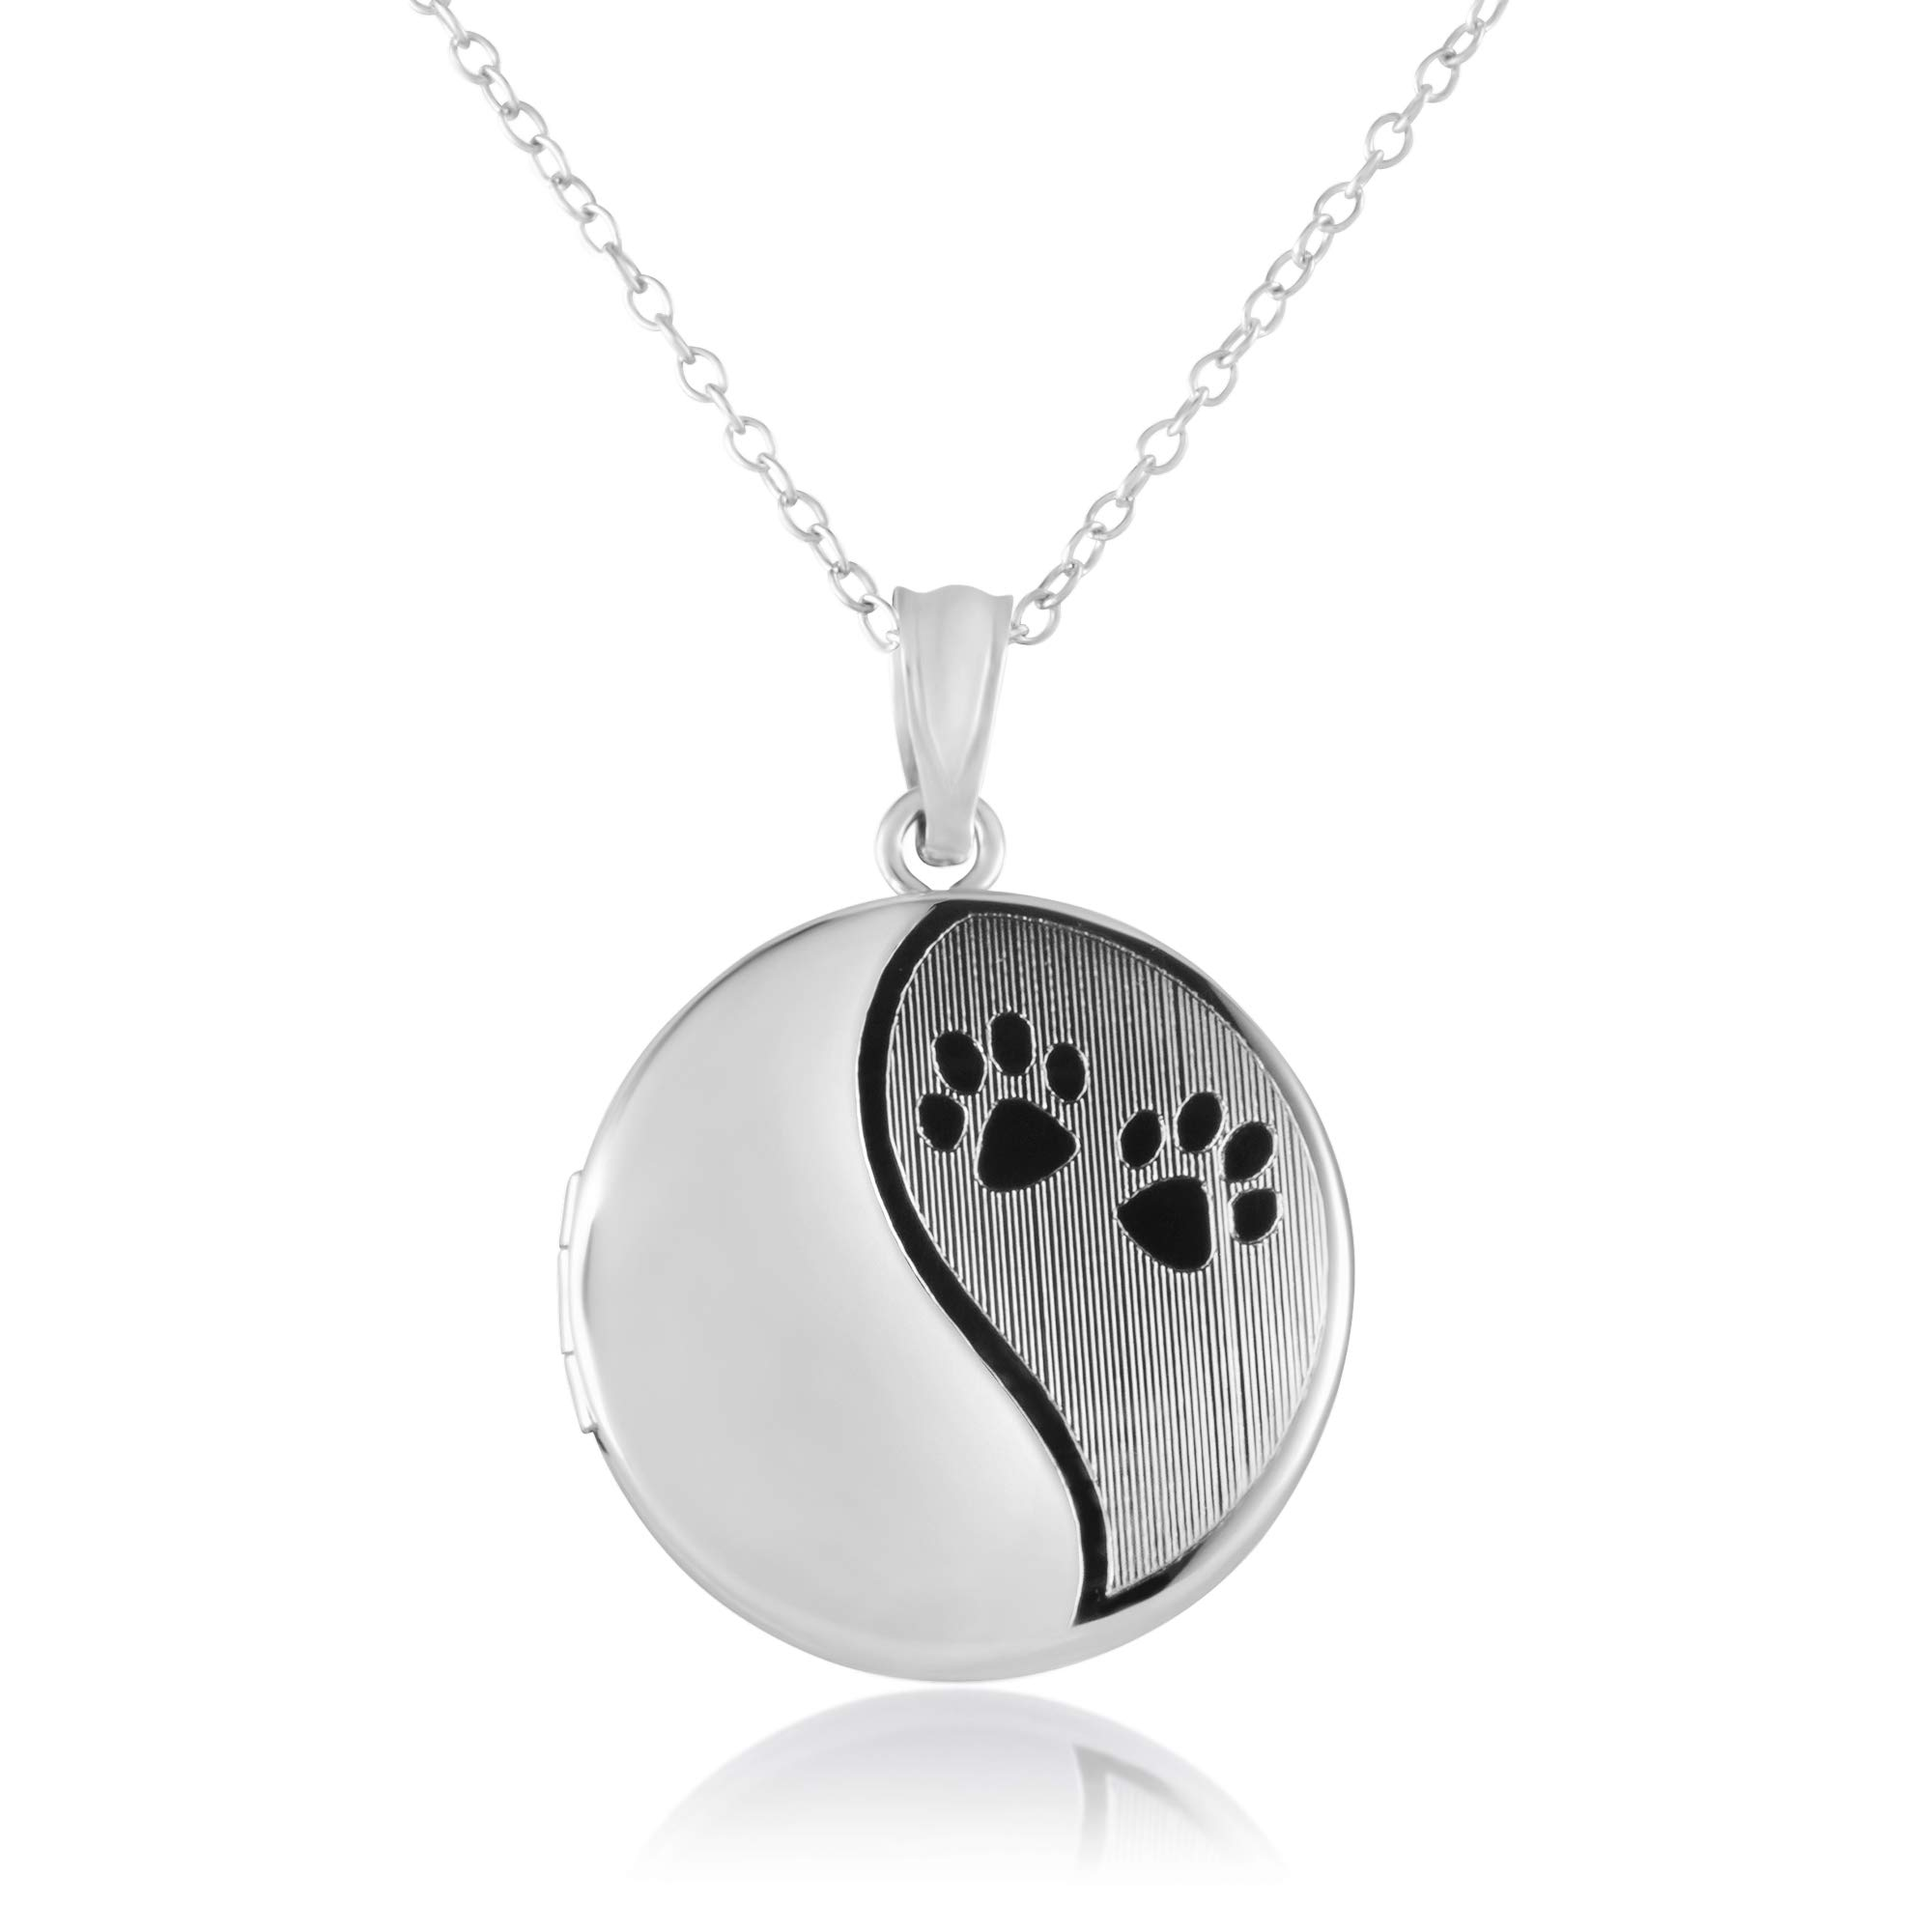 Sterling Silver Cremation/Keepsake Fashion Locket Pendant for Women, with Chain – In Various Sizes and Inspirational Designs